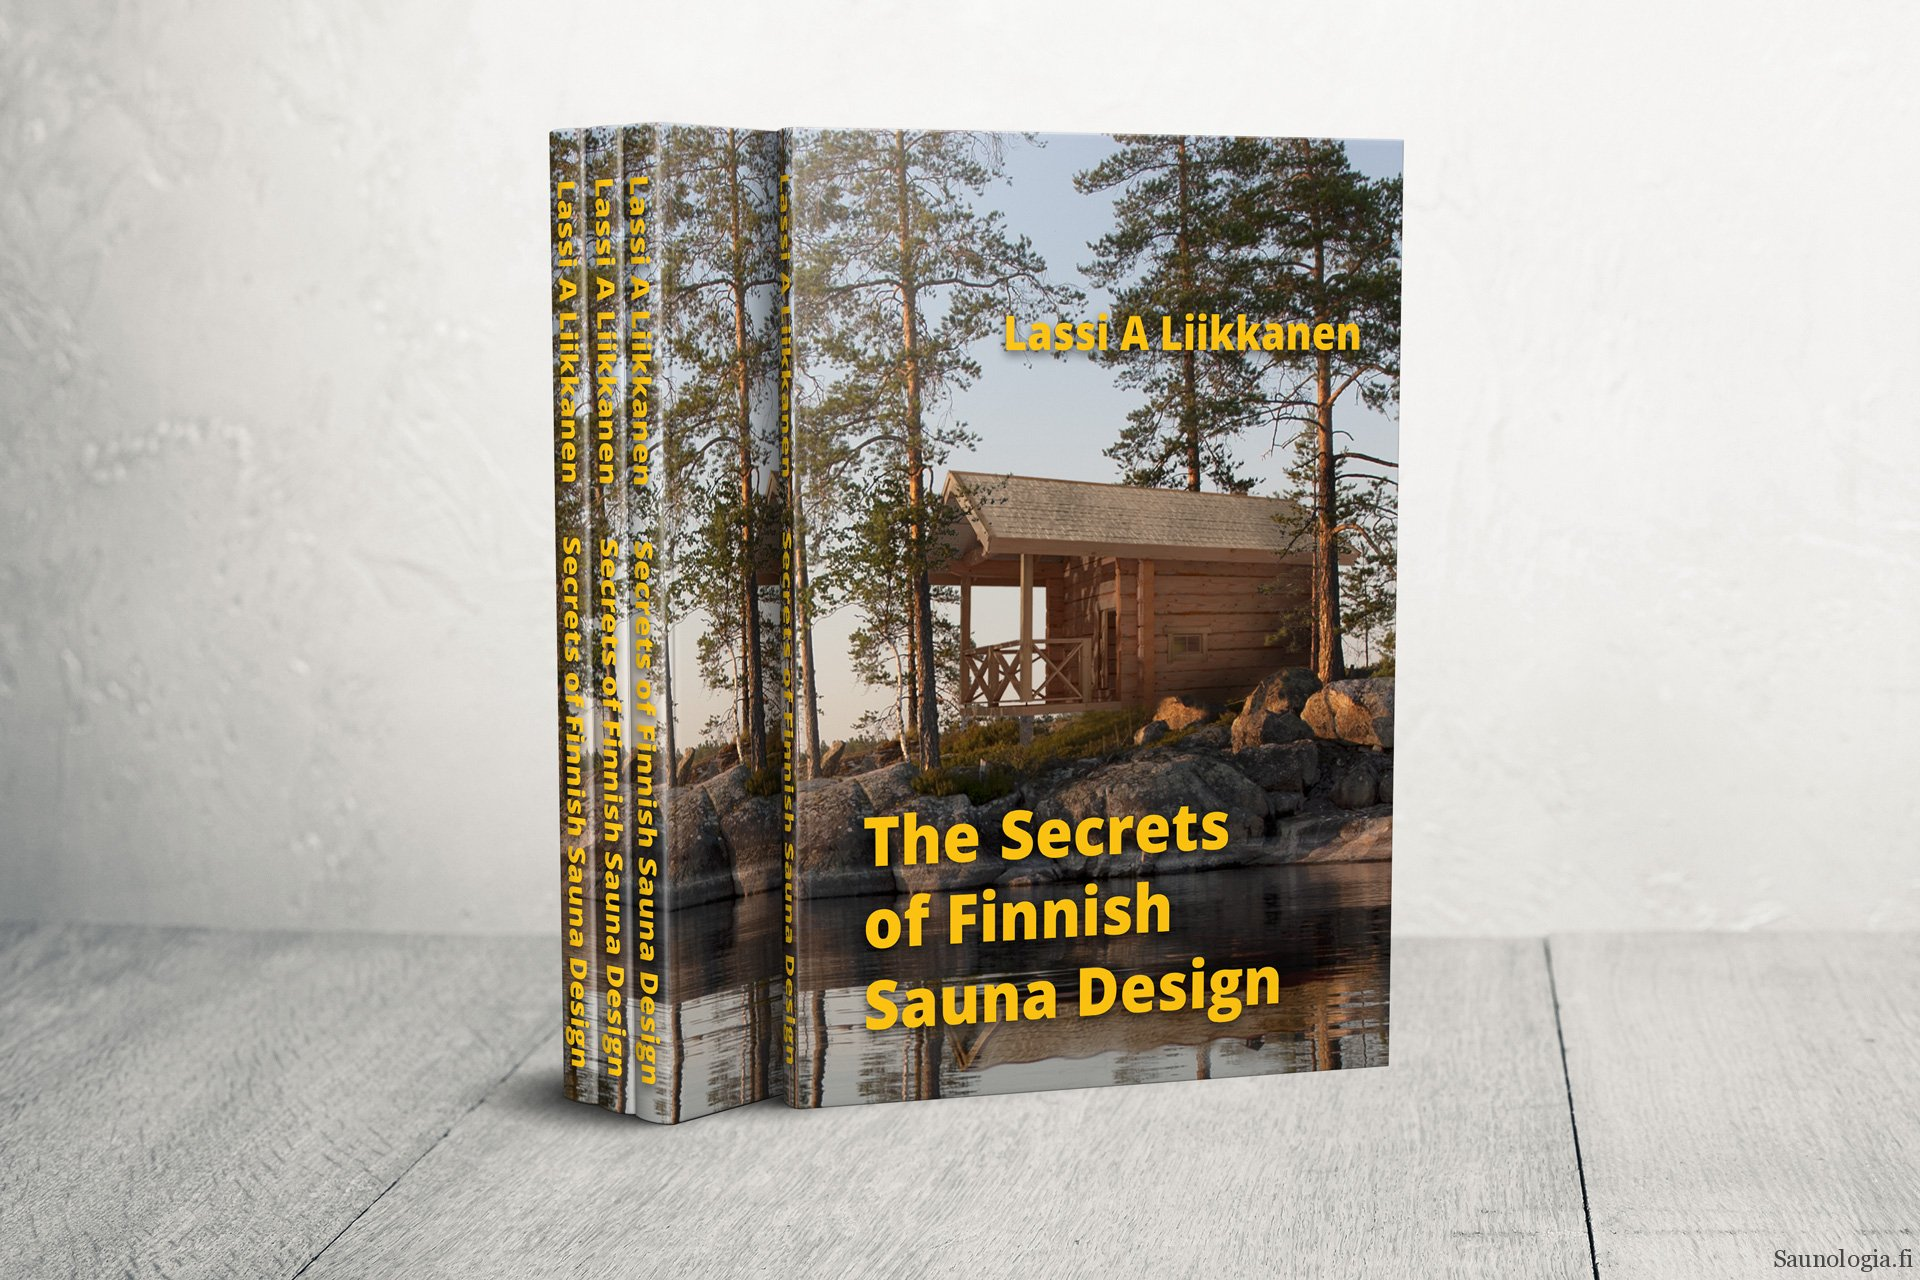 The Secrets of Finnish Sauna Design is out!